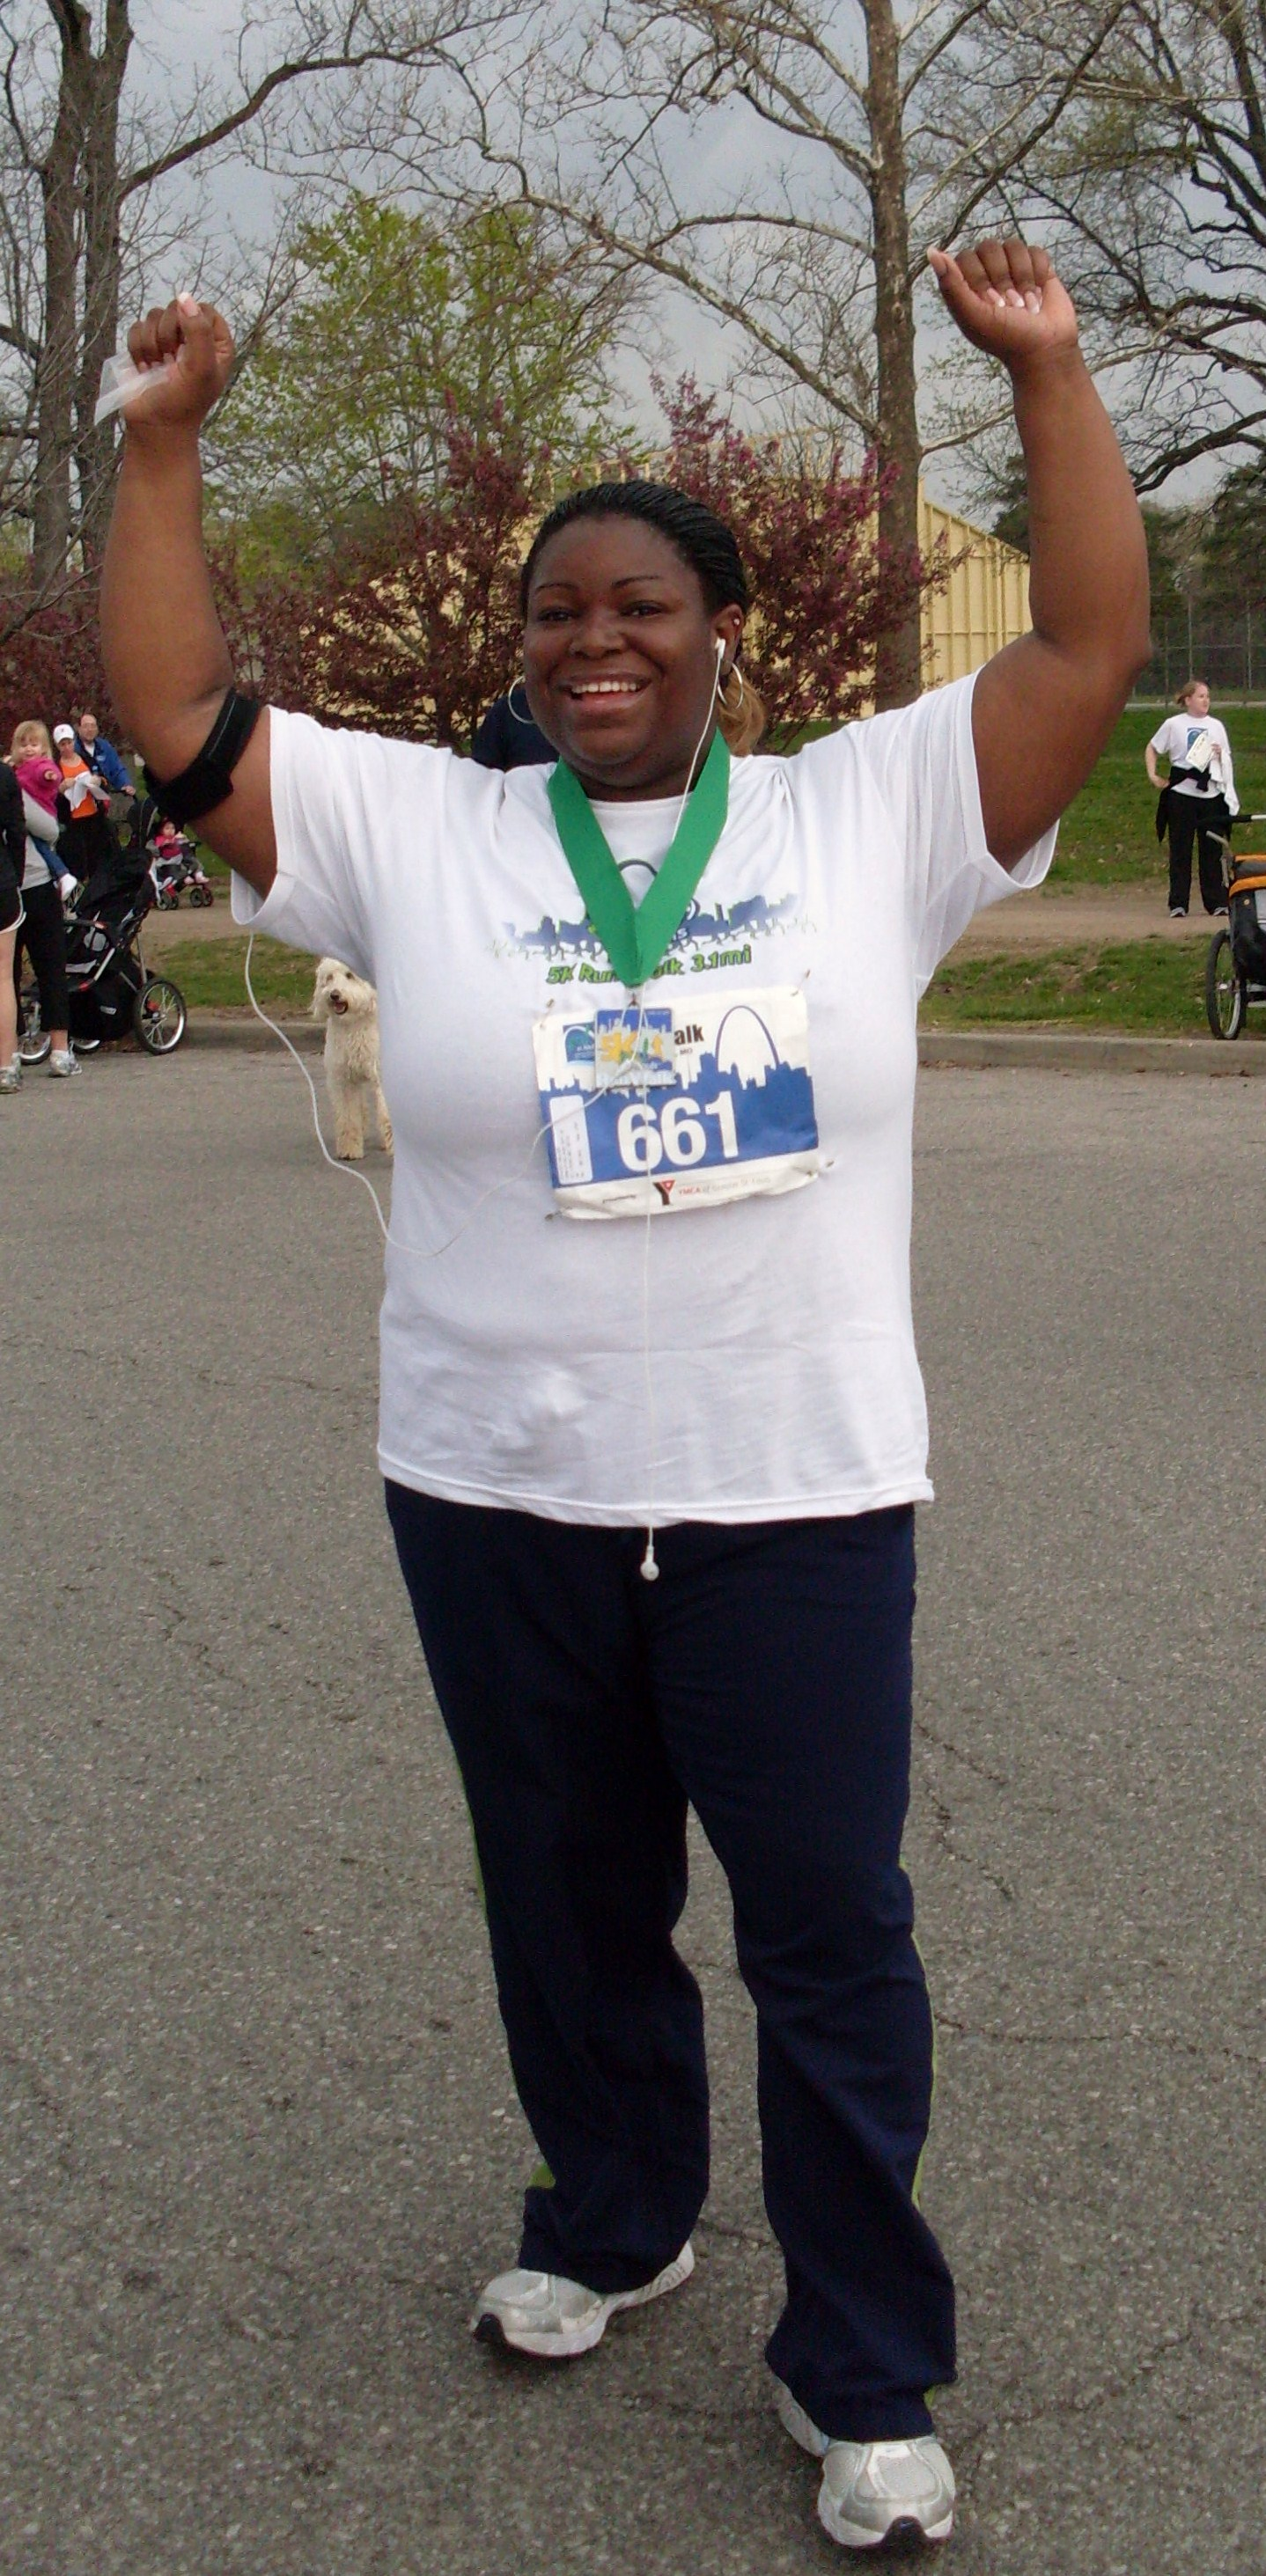 My 1st 5k Race